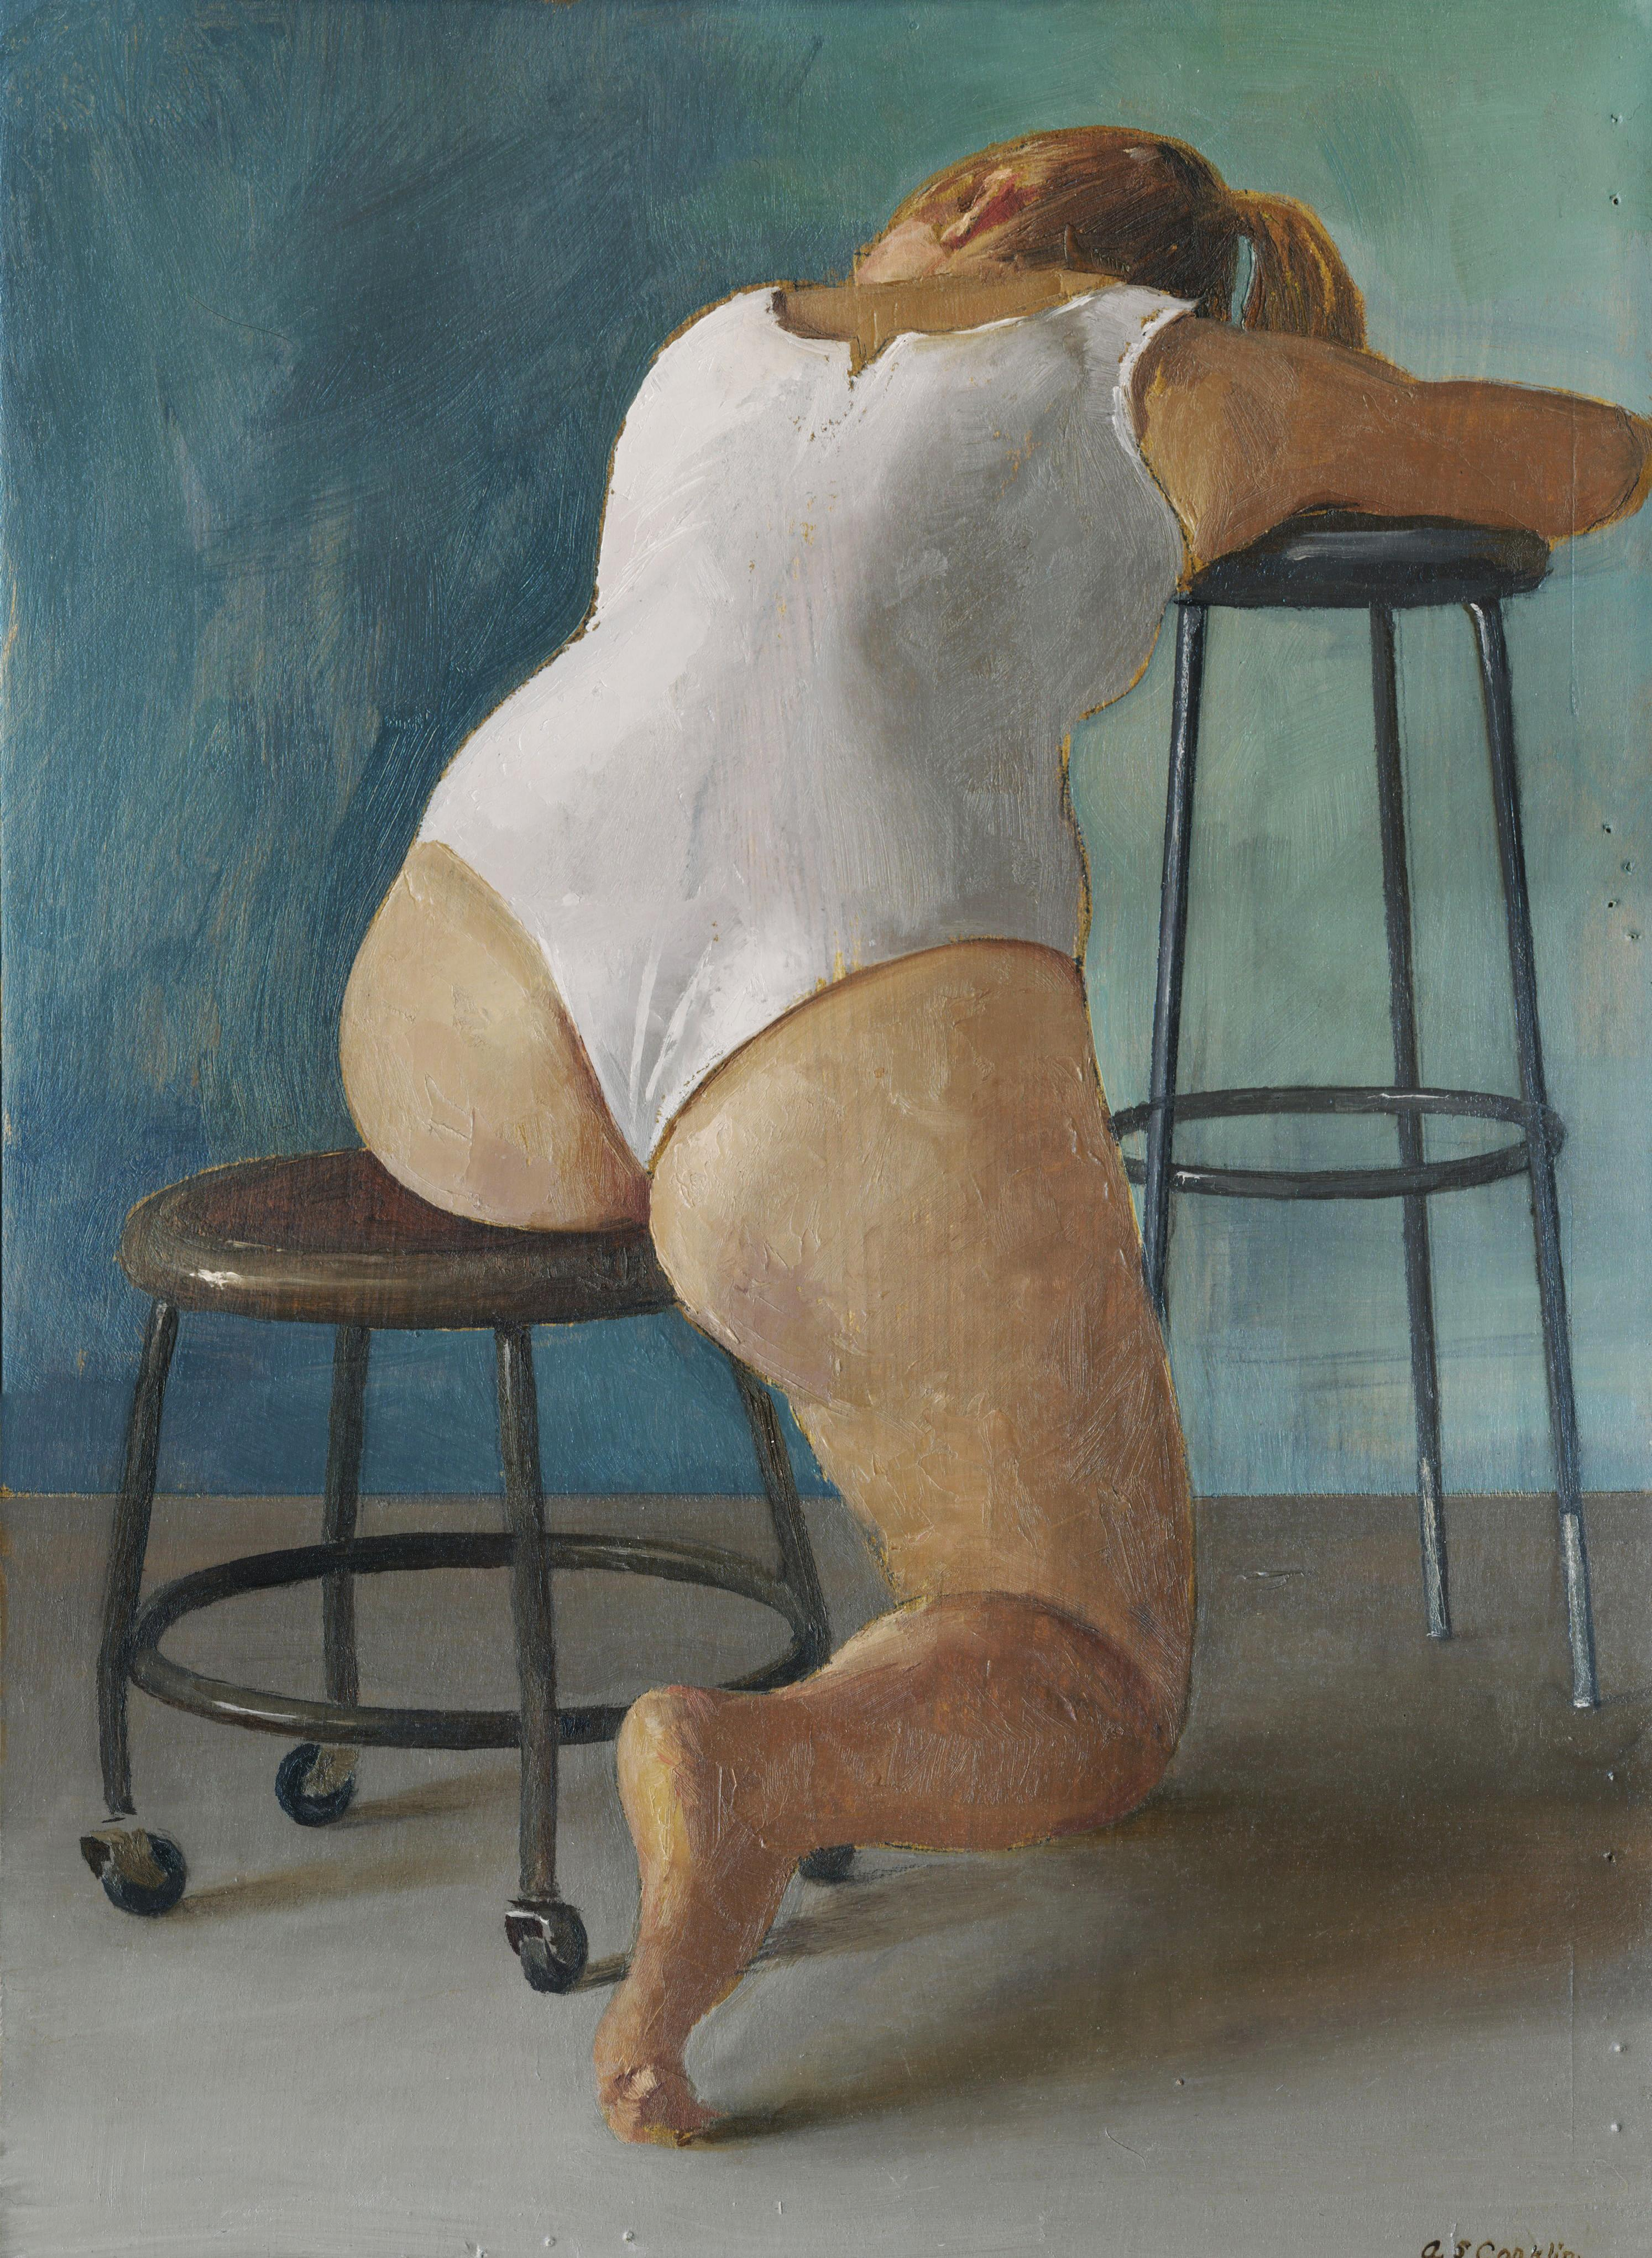 Paige Seated in White Leotard - Original Oil Painting Study with Female on Stool